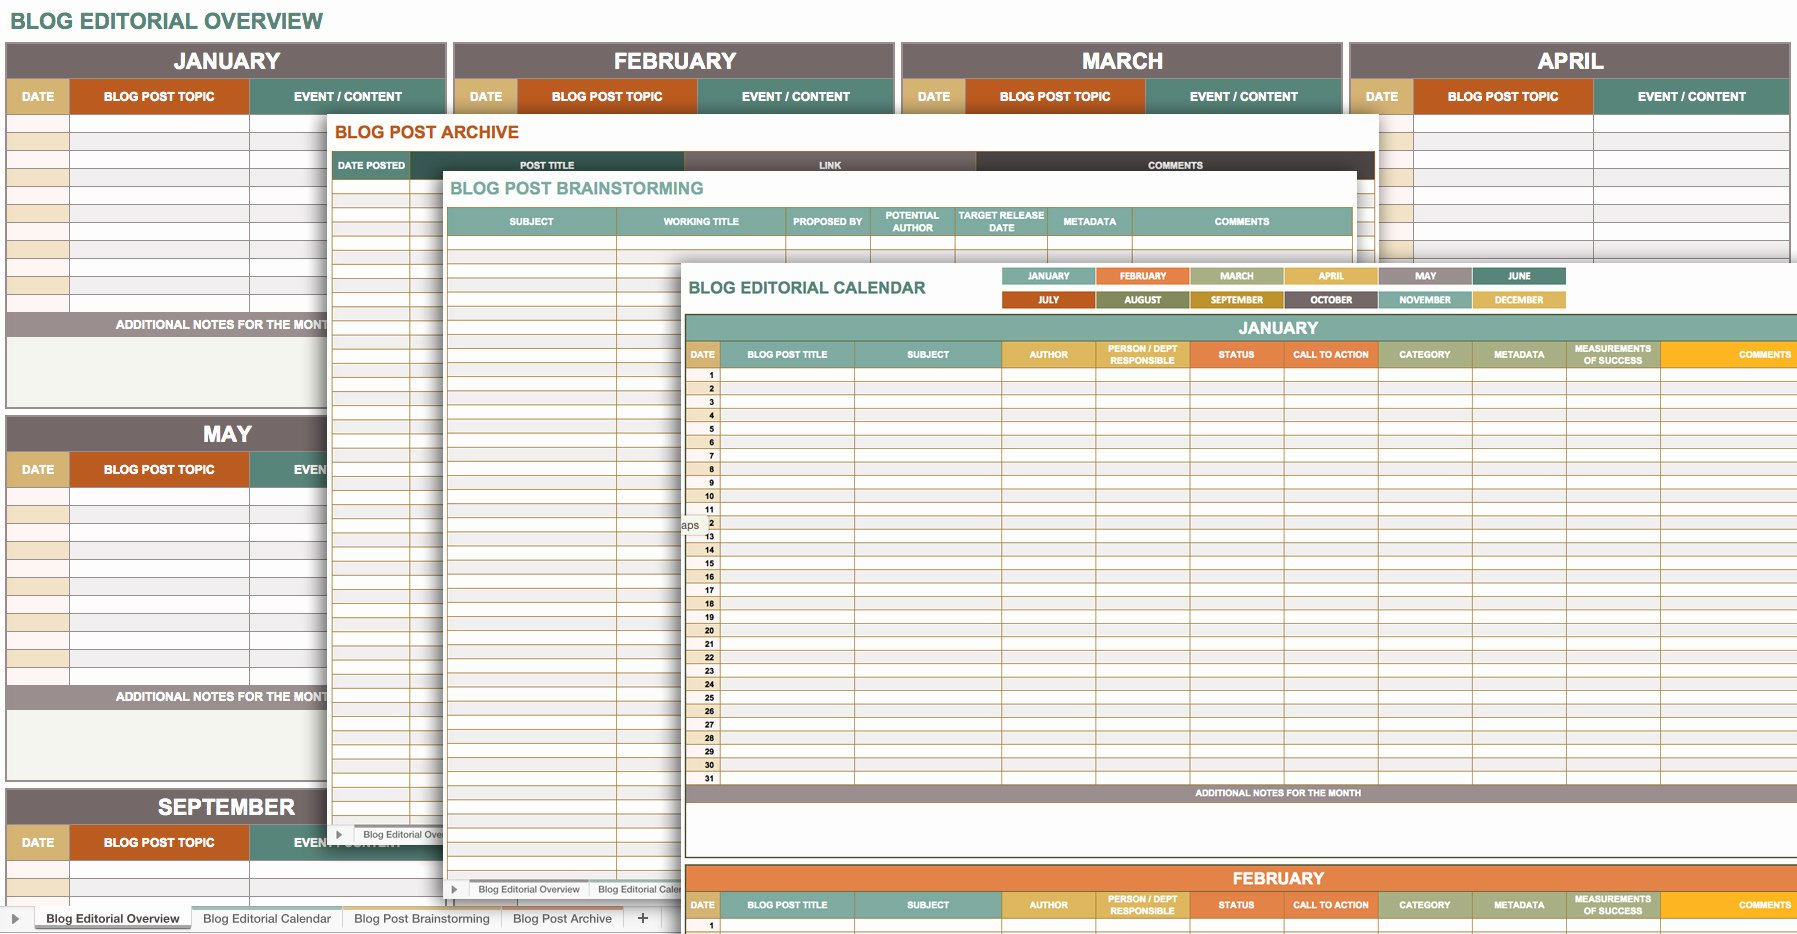 Marketing Plan Template Excel Fresh Free Marketing Plan Templates for Excel Smartsheet